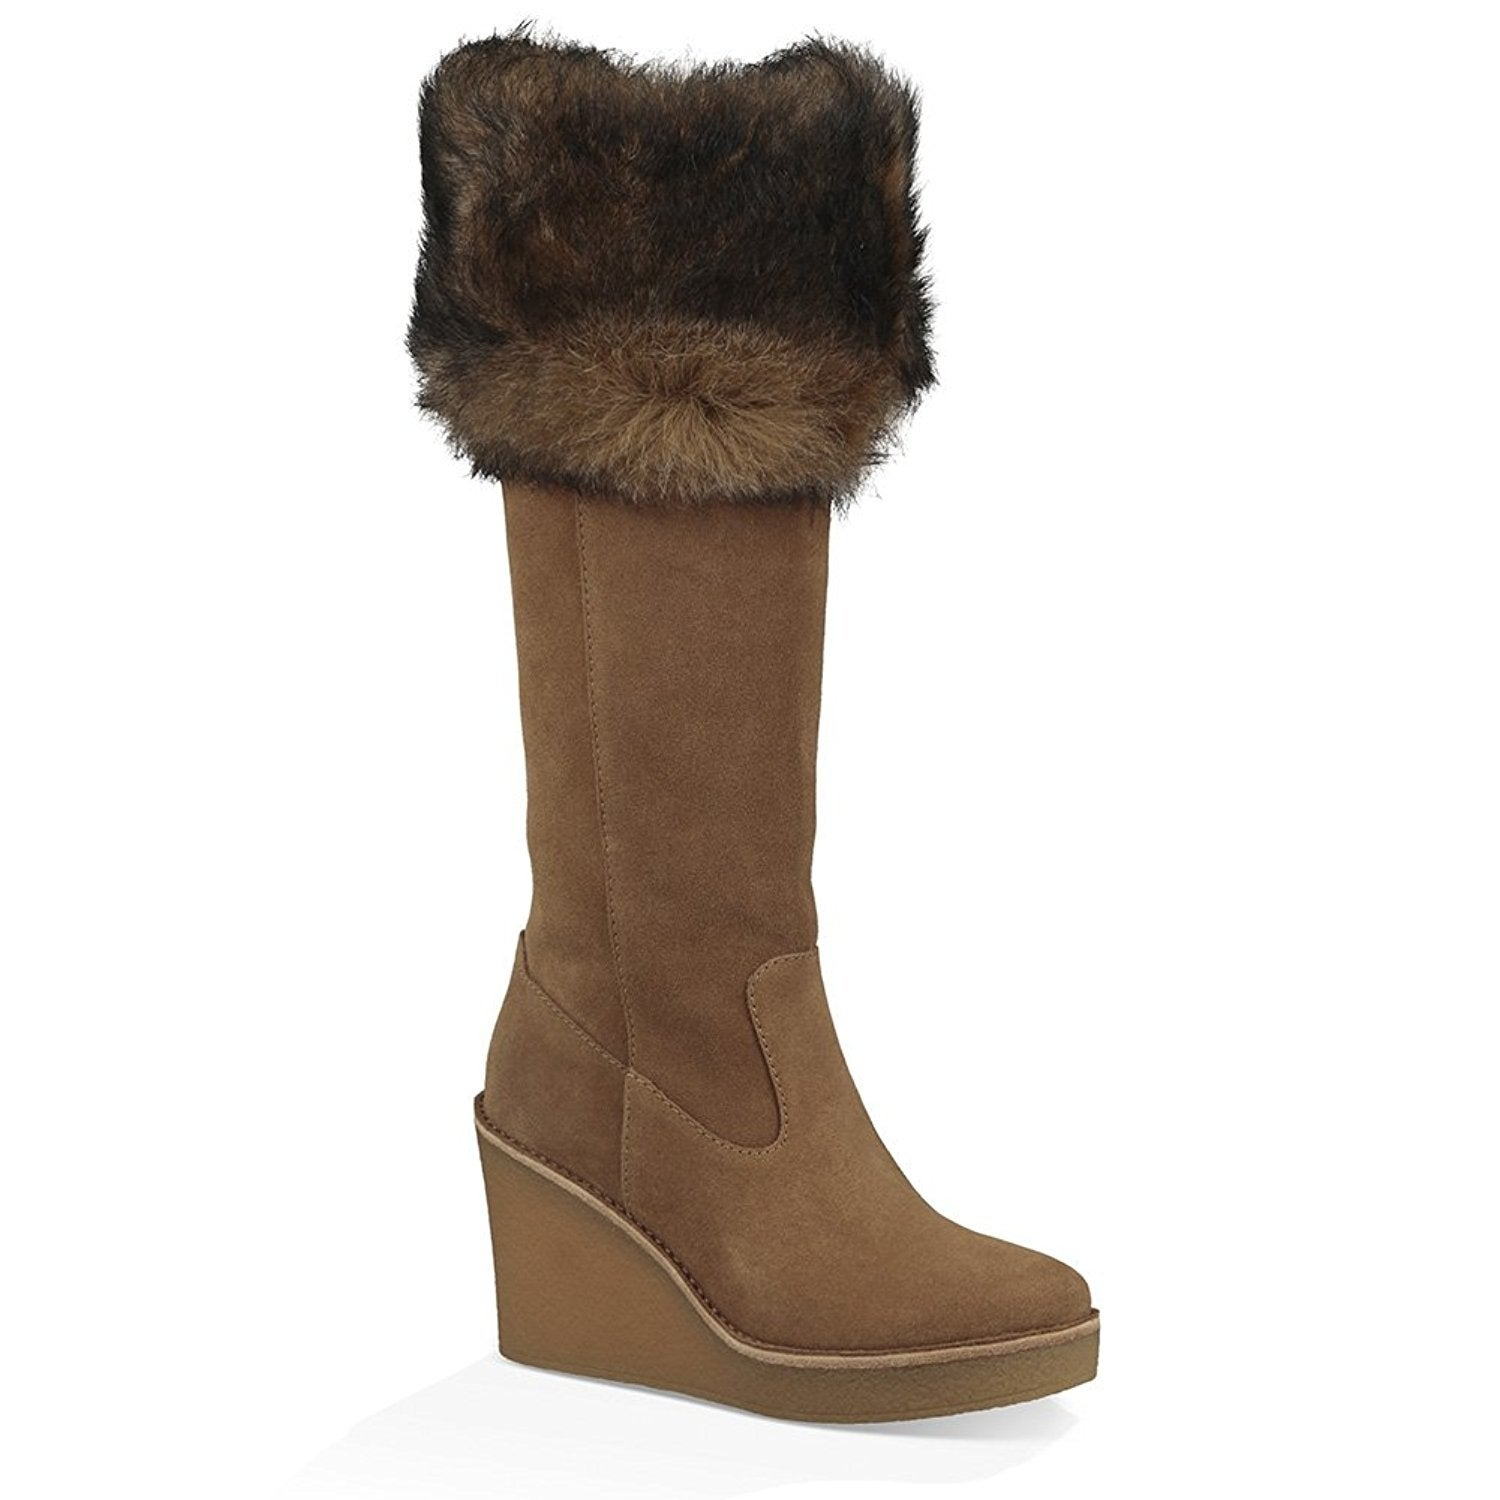 ef90e081dc9 Shop Ugg Womens Valberg Closed Toe Knee High Fashion Boots - Free Shipping  Today - Overstock - 22337244